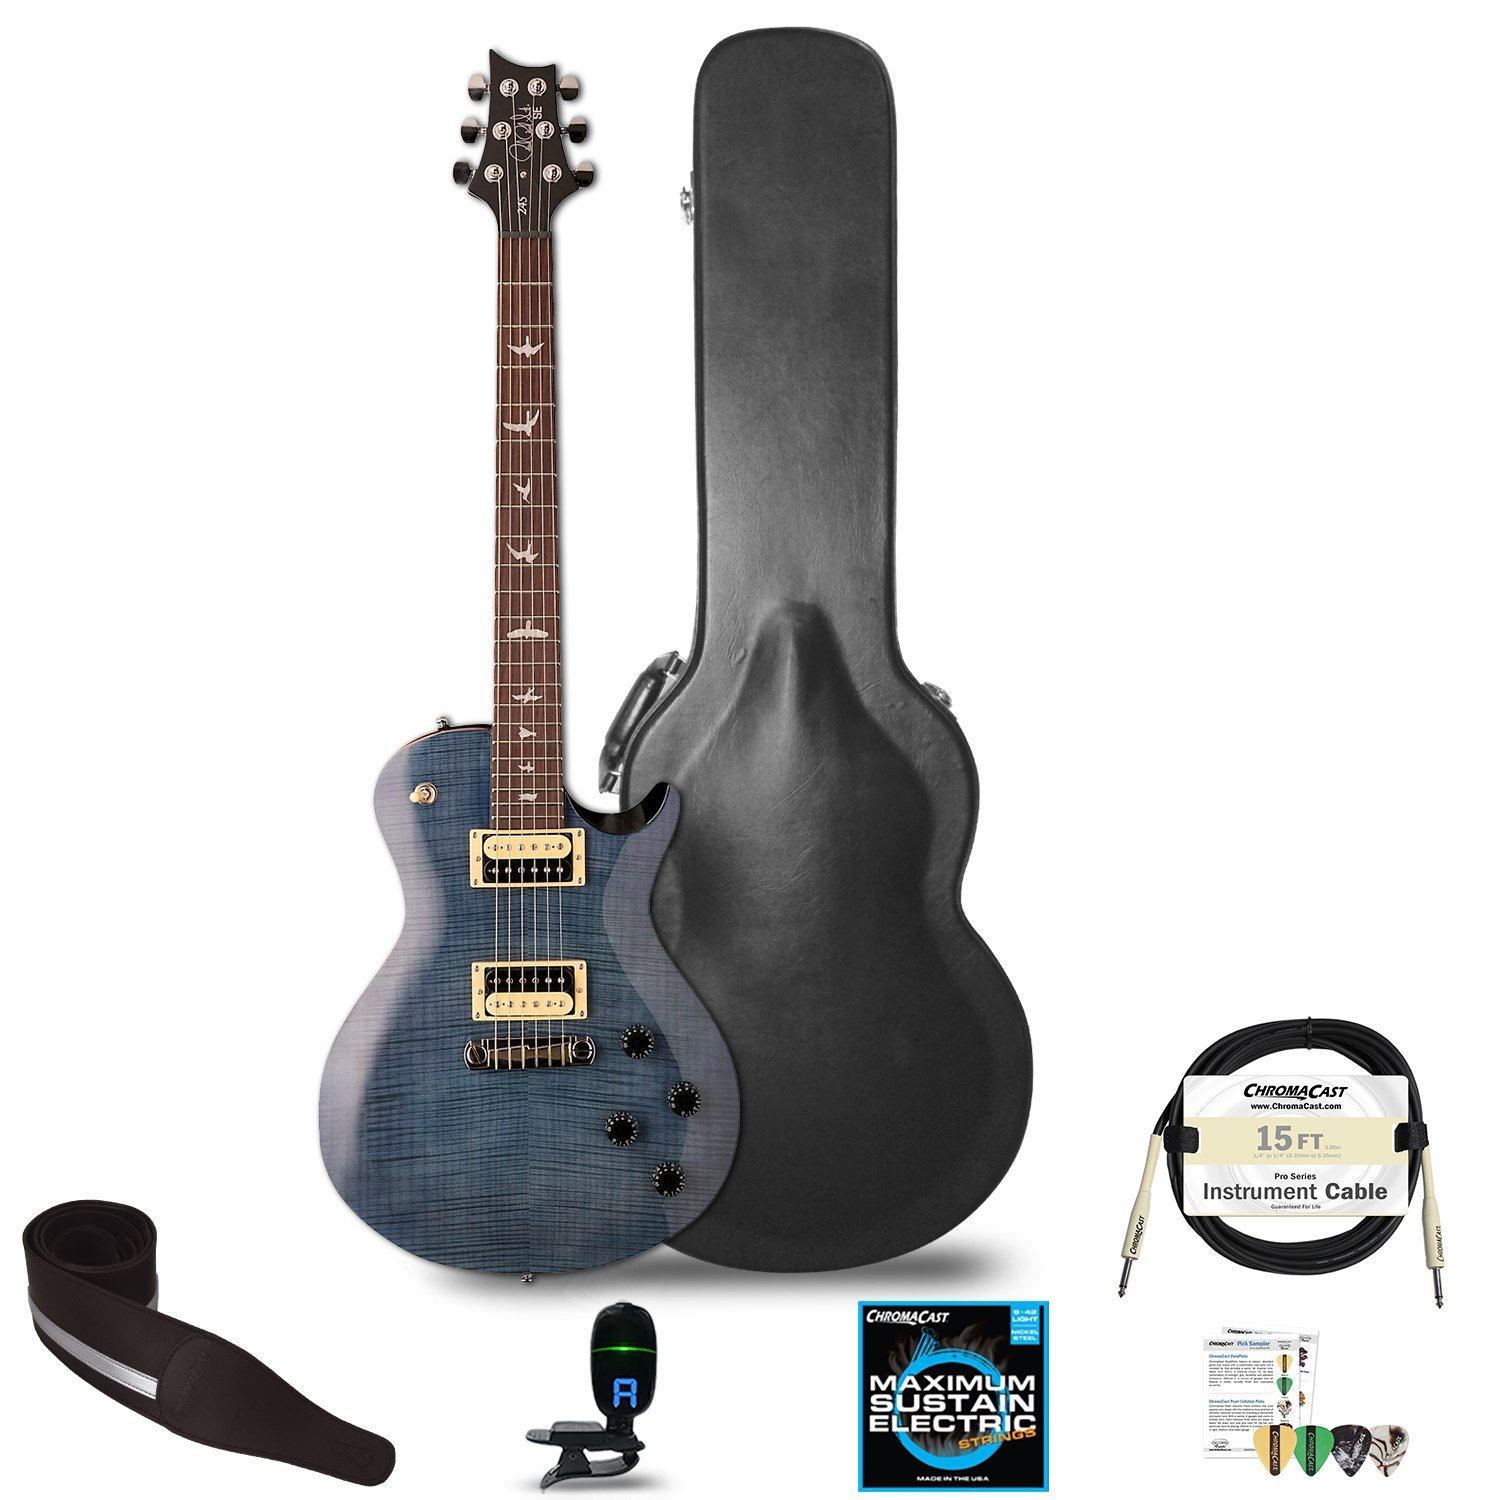 Cheap PRS SE Standard 245 Electric Guitar with Accessories Whale Blue Black Friday & Cyber Monday 2019